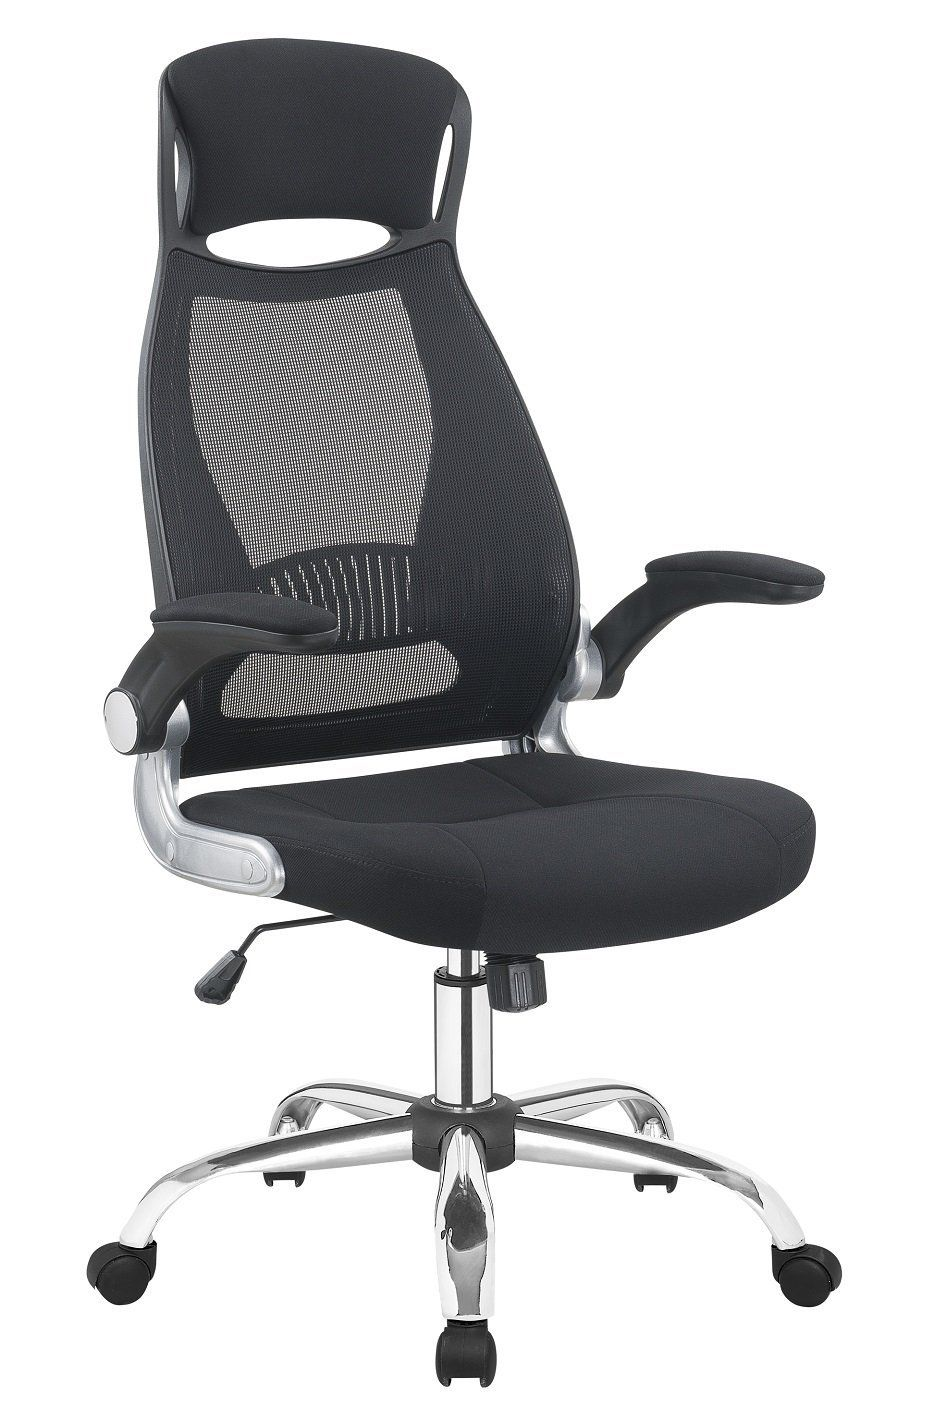 New Ergonomic Executive Gaming Home Office